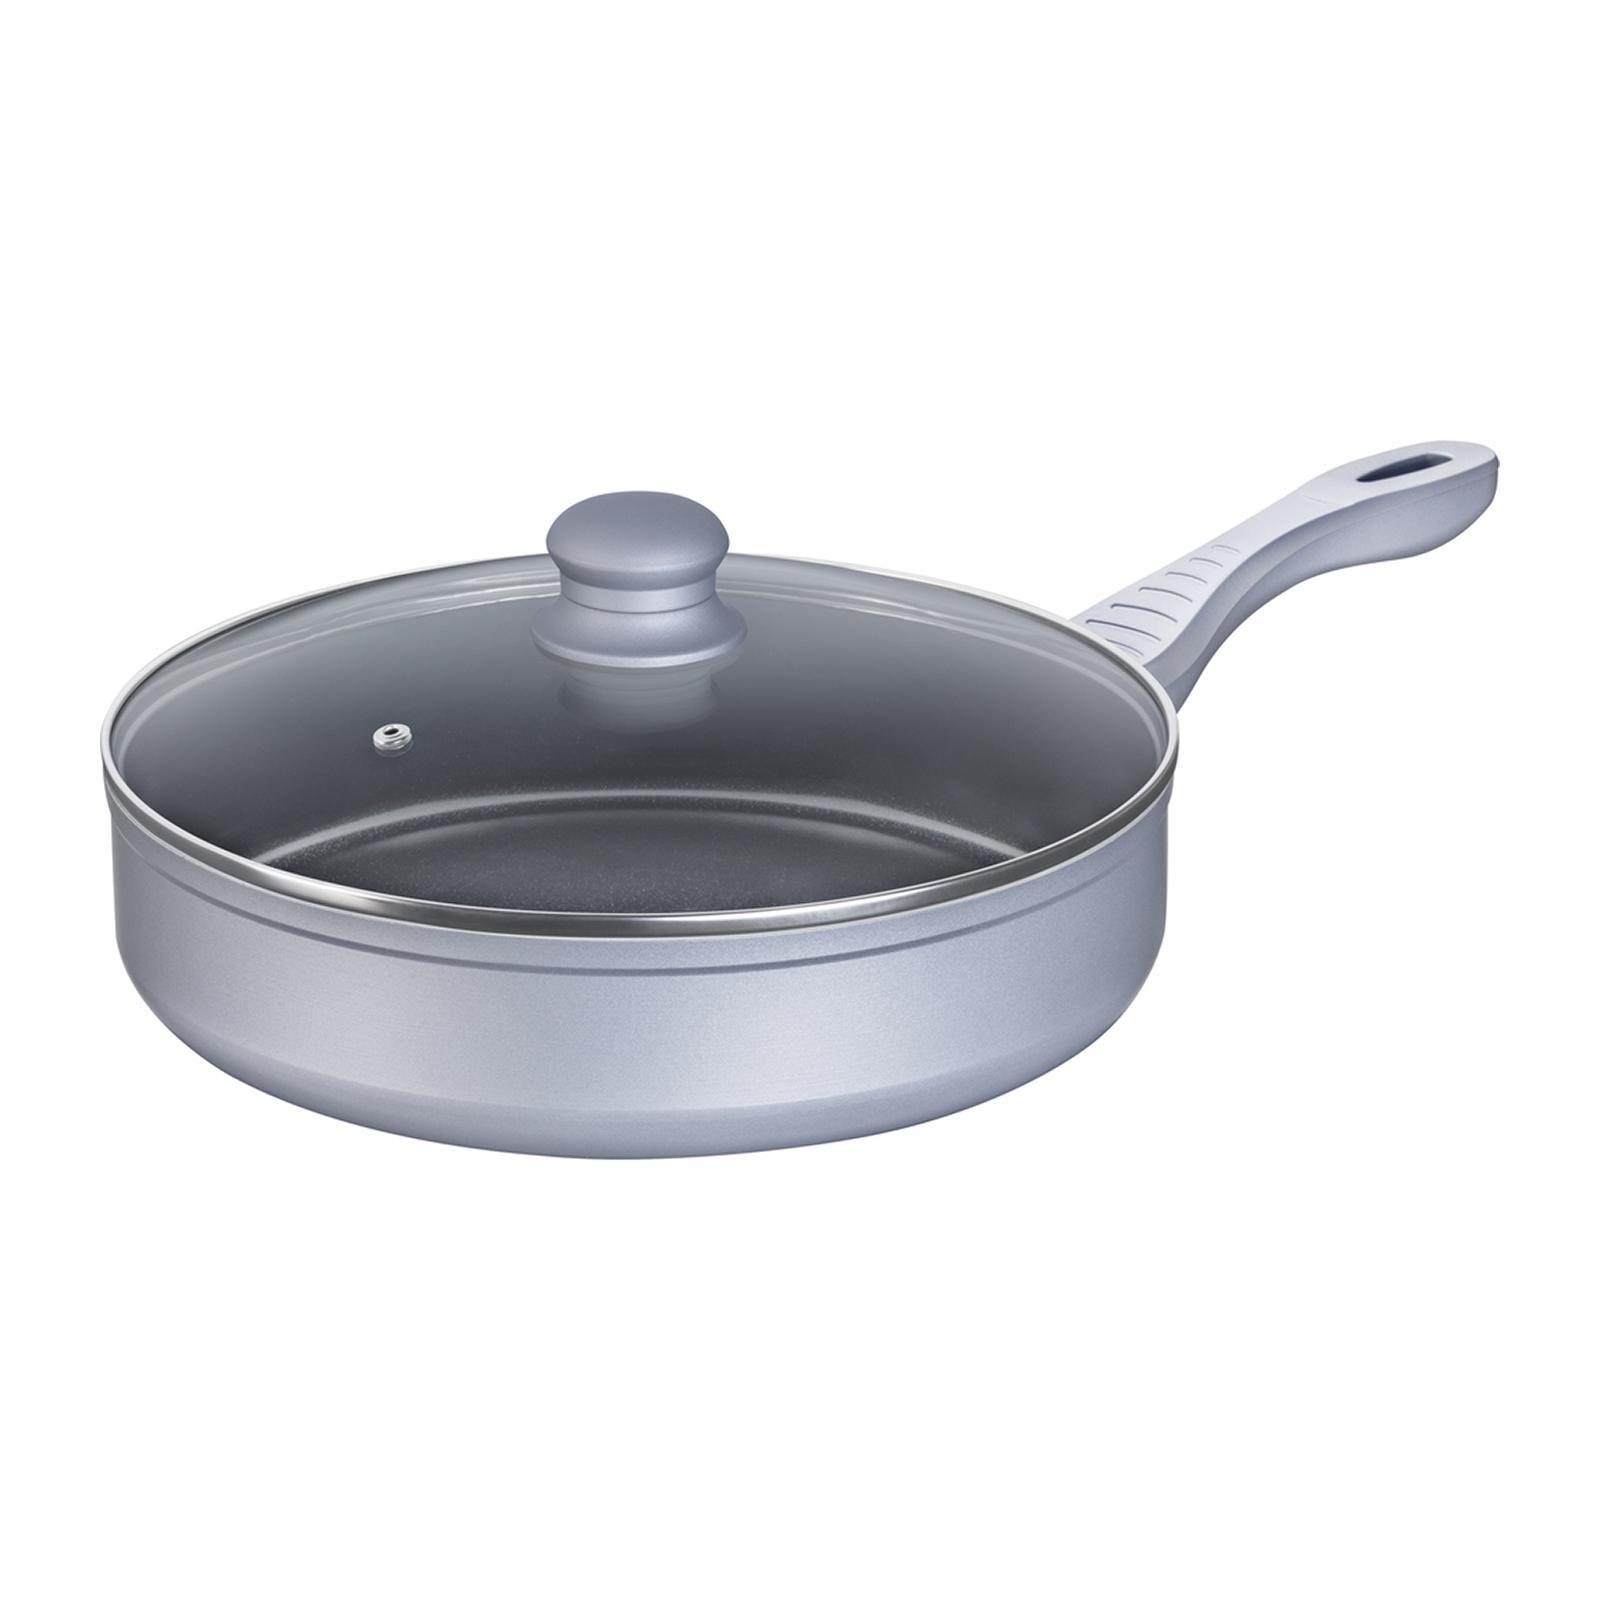 Lamart Ceramic Pan With Lid 28CM Silver